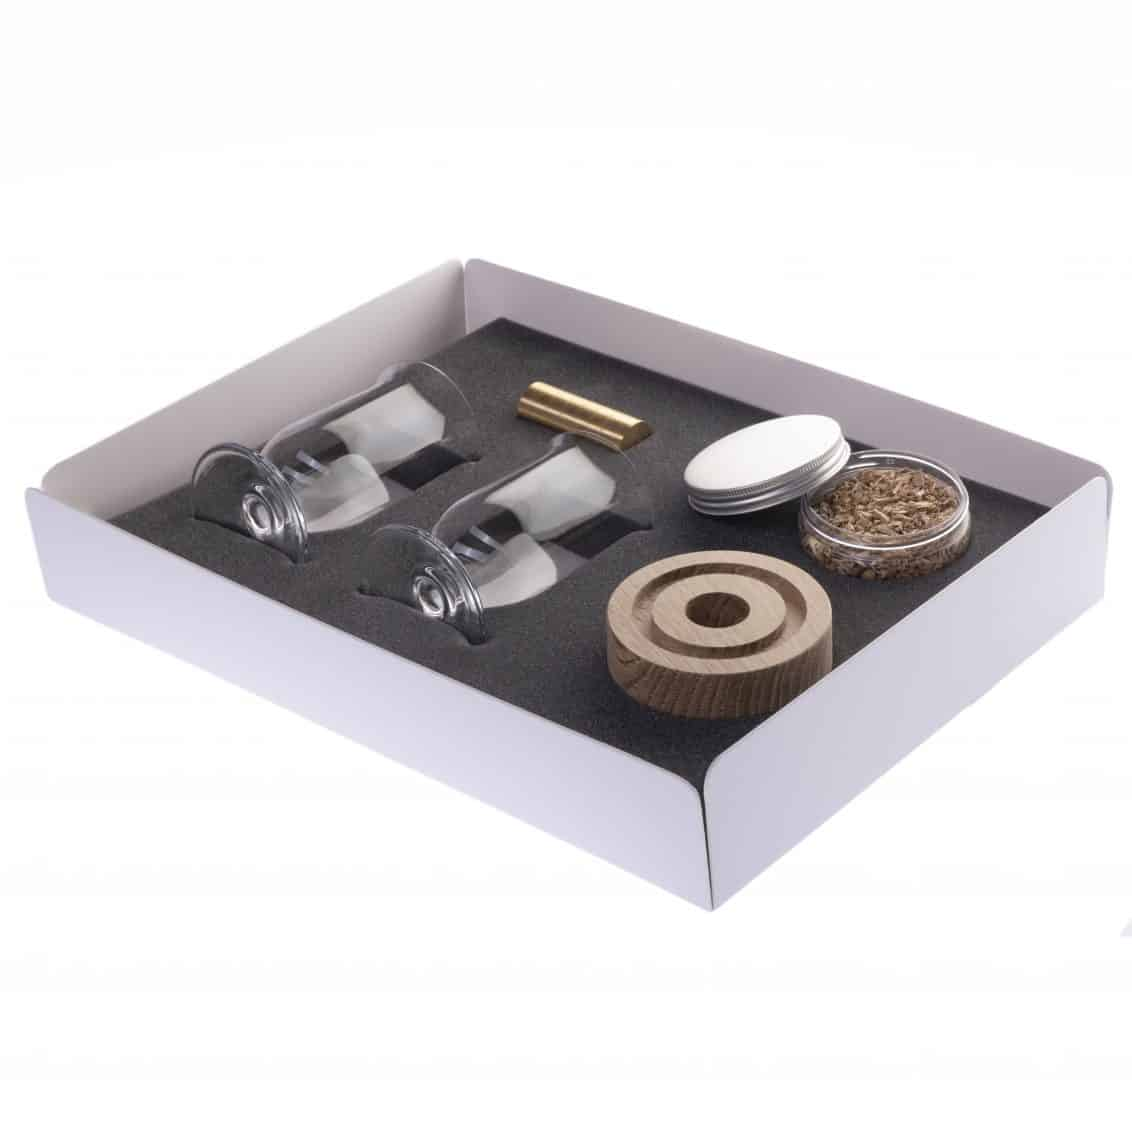 CD-Store-glasses-and-smoker-1132x1134